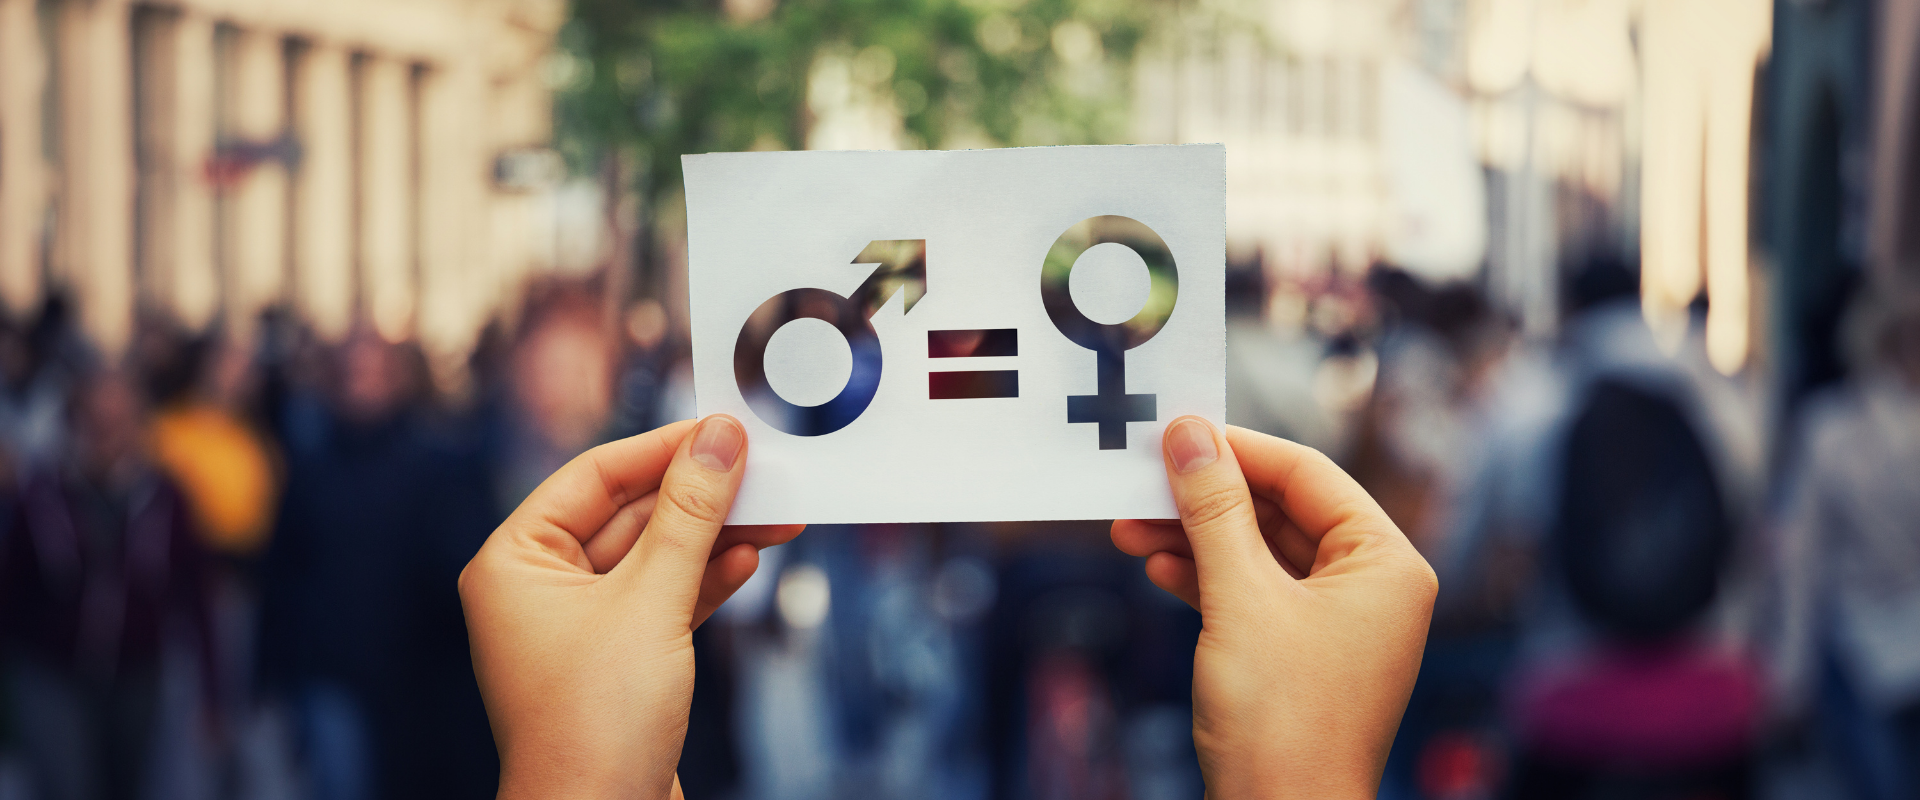 Why Gender Equality Matters